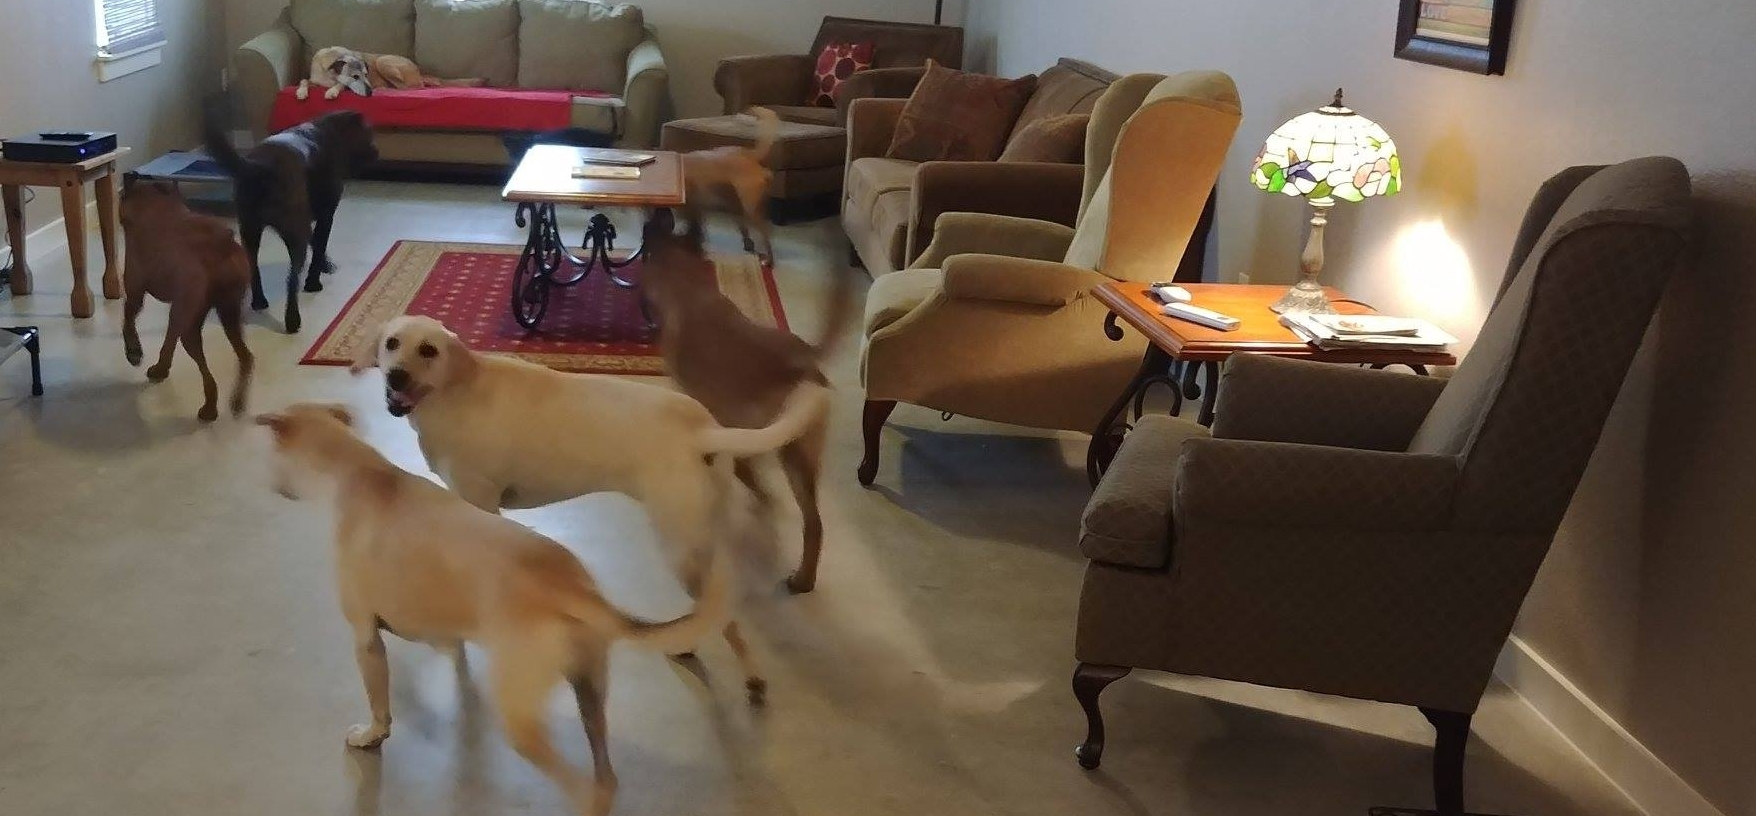 Dogs in lounge area 2.jpg